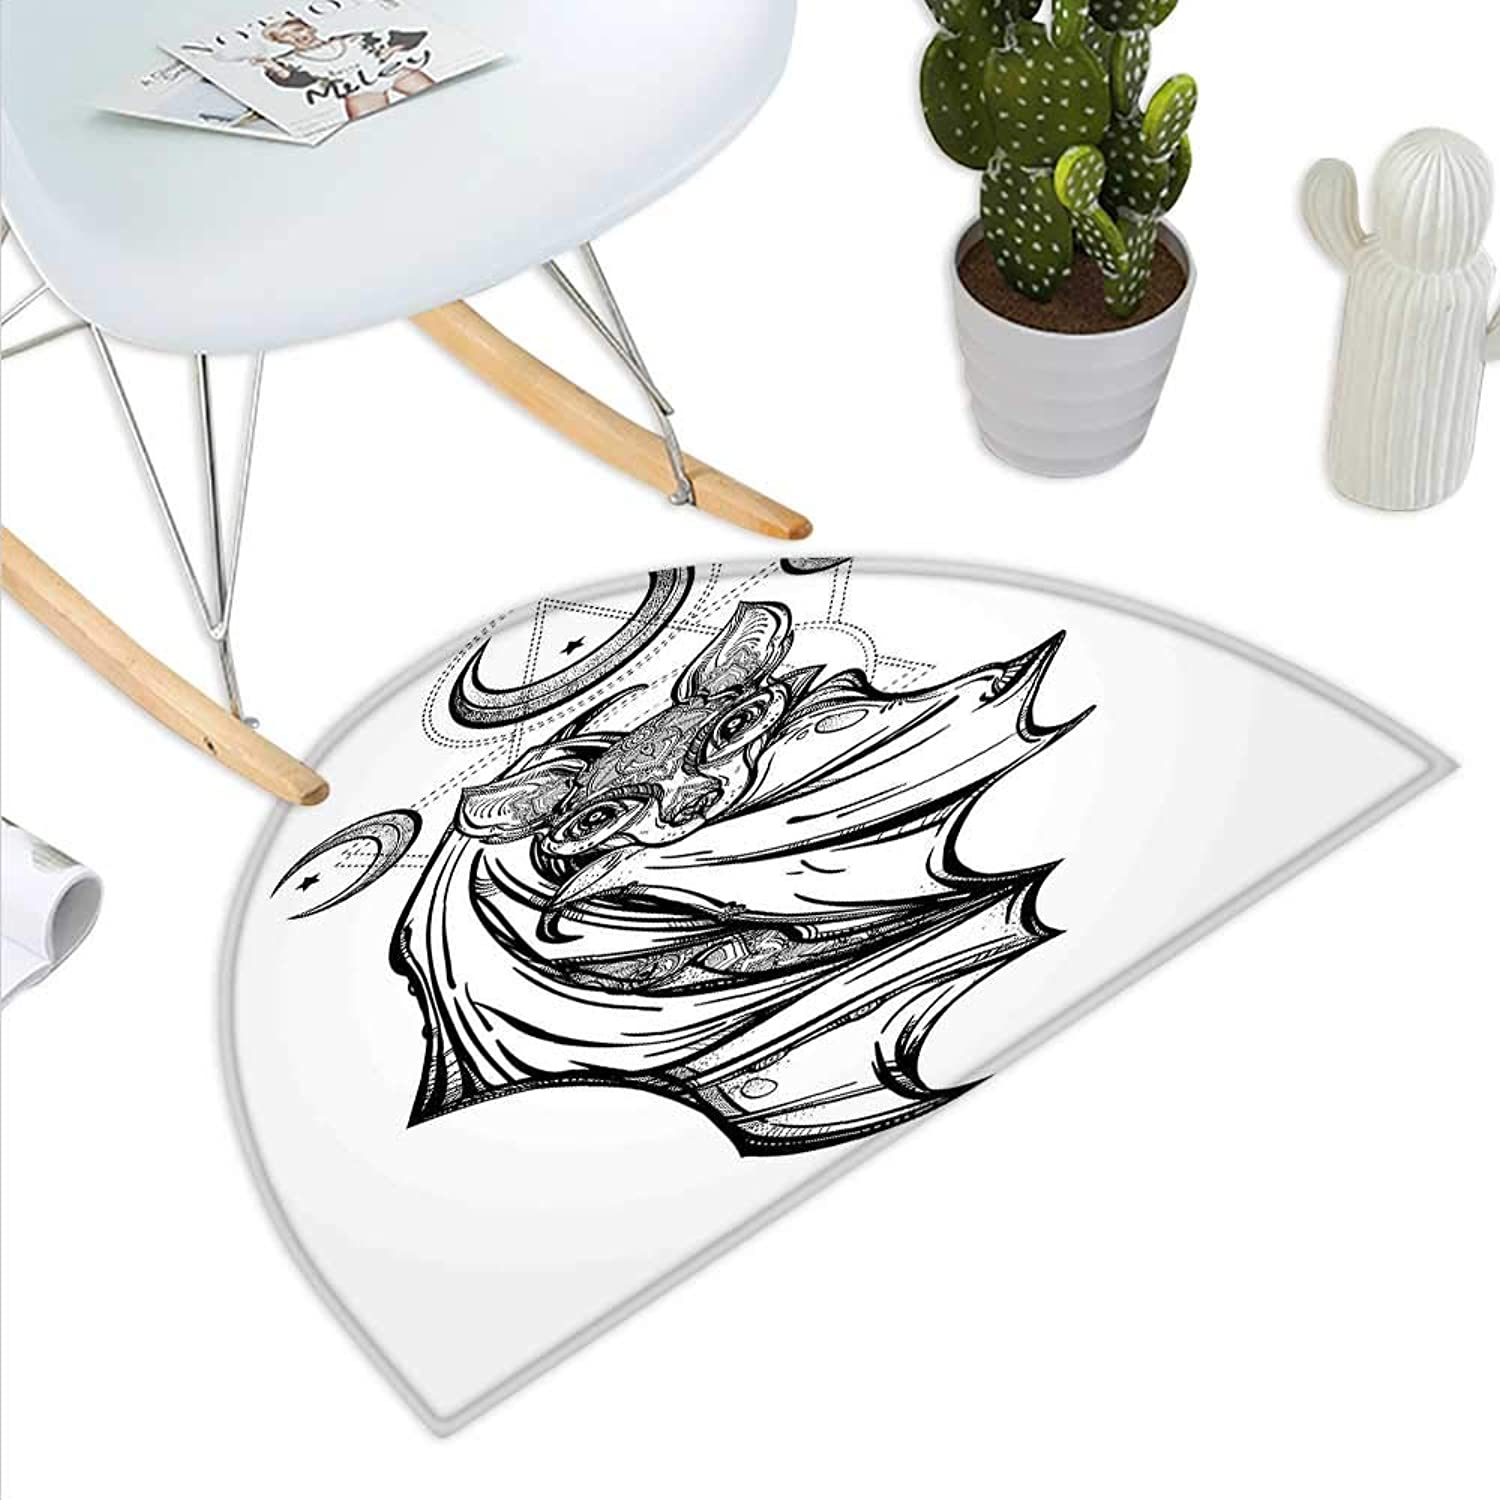 Occult Semicircle Doormat Nocturnal Bat Drawing Crescent Moon with Spiritual Night Animal Creature Graphic Halfmoon doormats H 35.4  xD 53.1  Grey Black